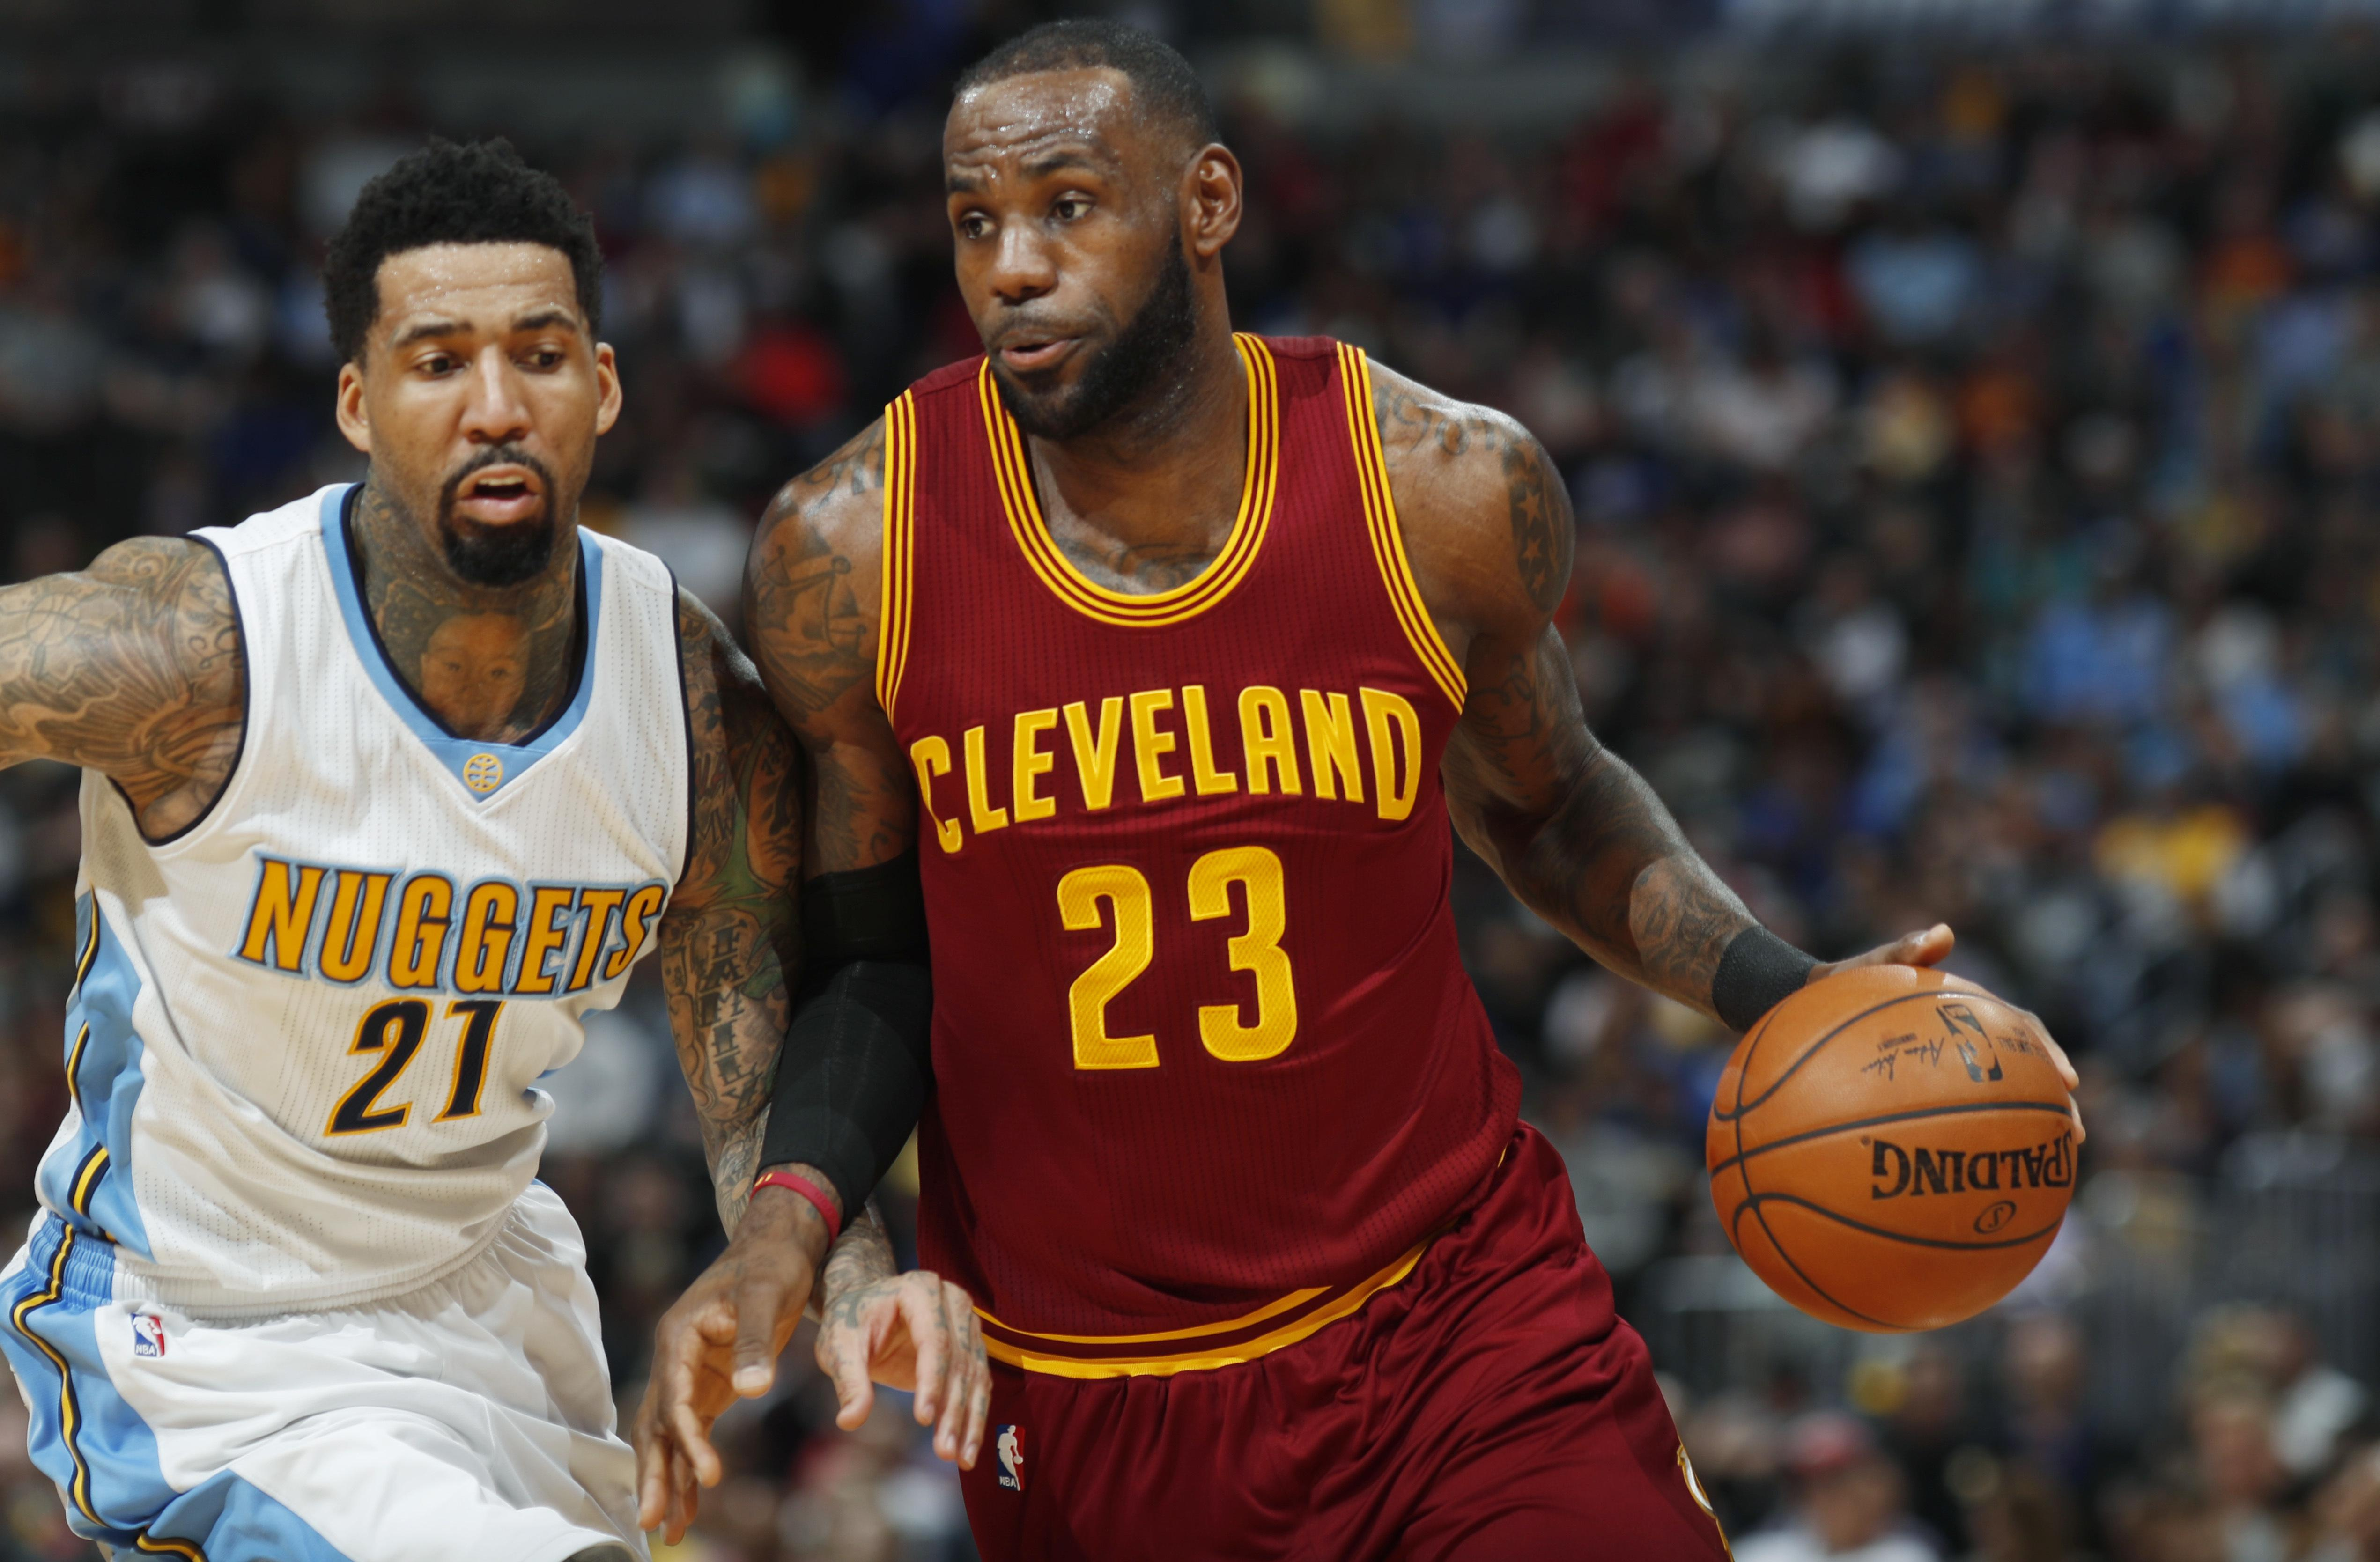 Cavaliers_nuggets_basketball_05901